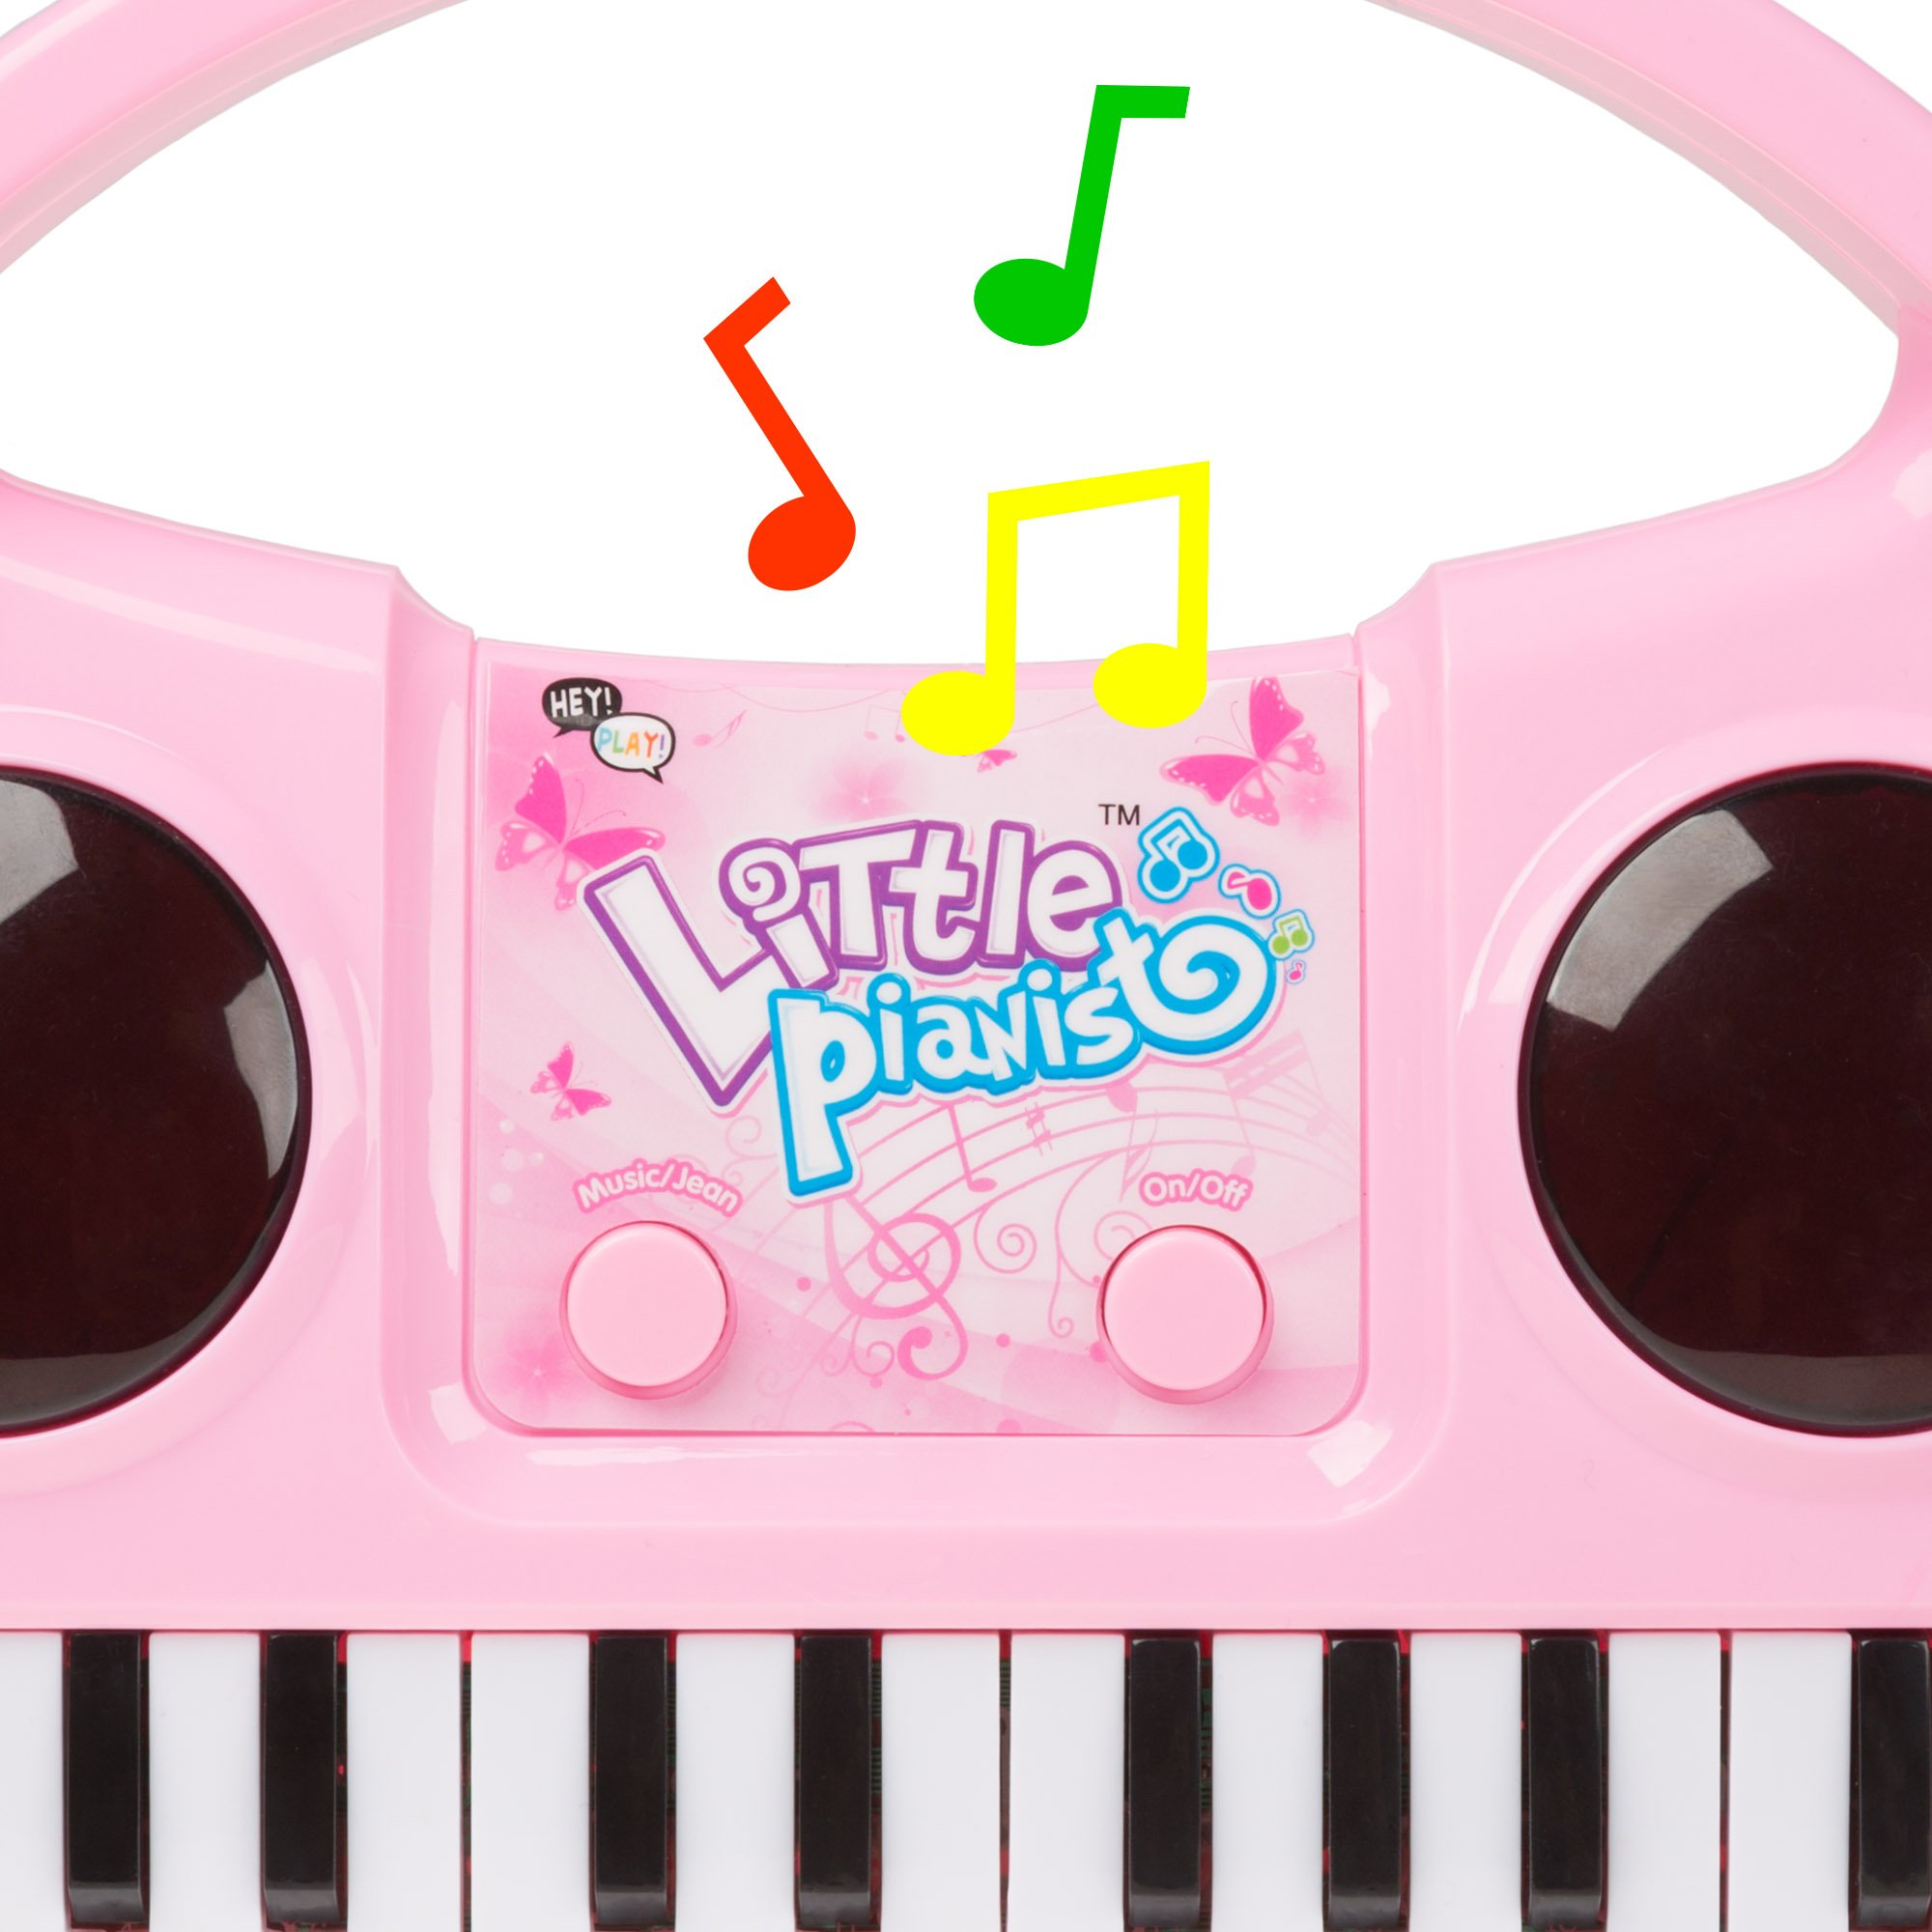 Kids Karaoke Machine with Microphone, Includes Musical Keyboard & Lights - Battery Operated Portable Singing Machine for Boys and Girls by Hey! Play! by Hey!Play! (Image #2)